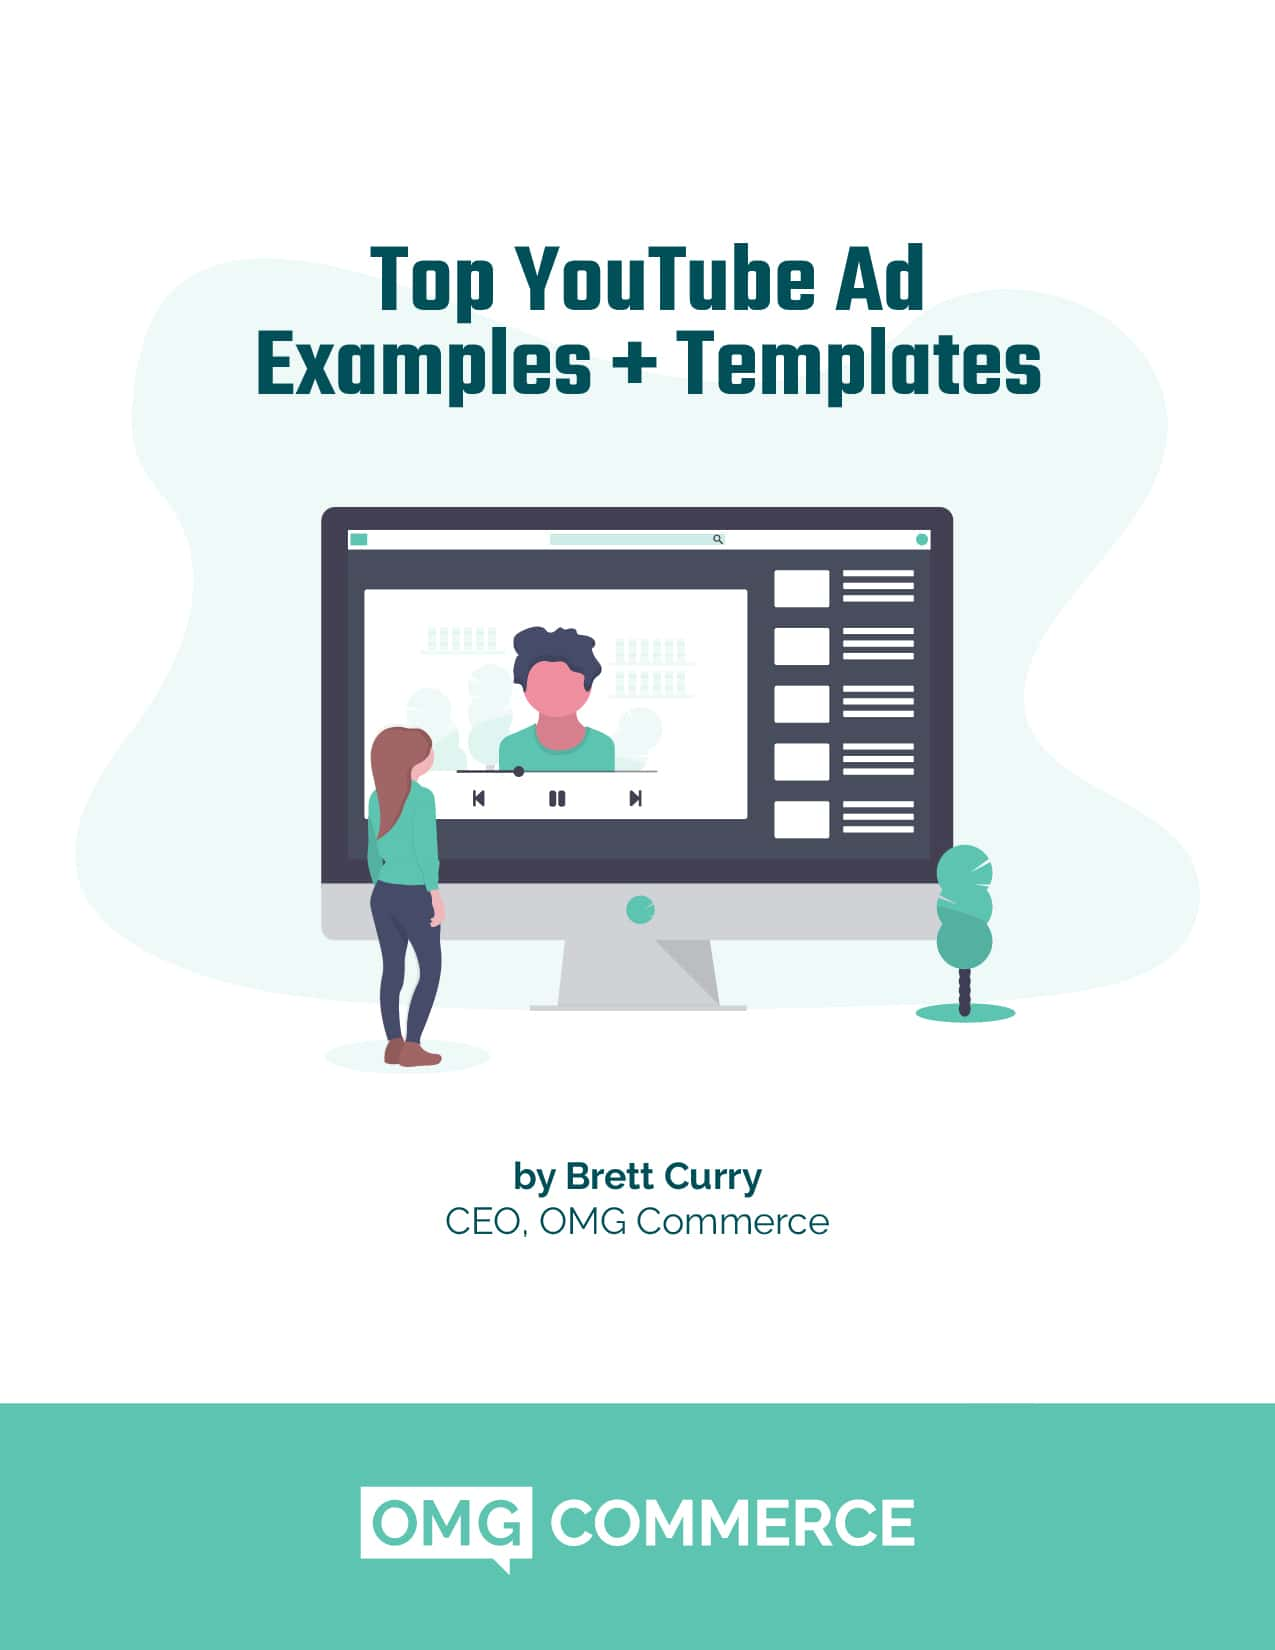 Top YouTube Ad Examples & Templates